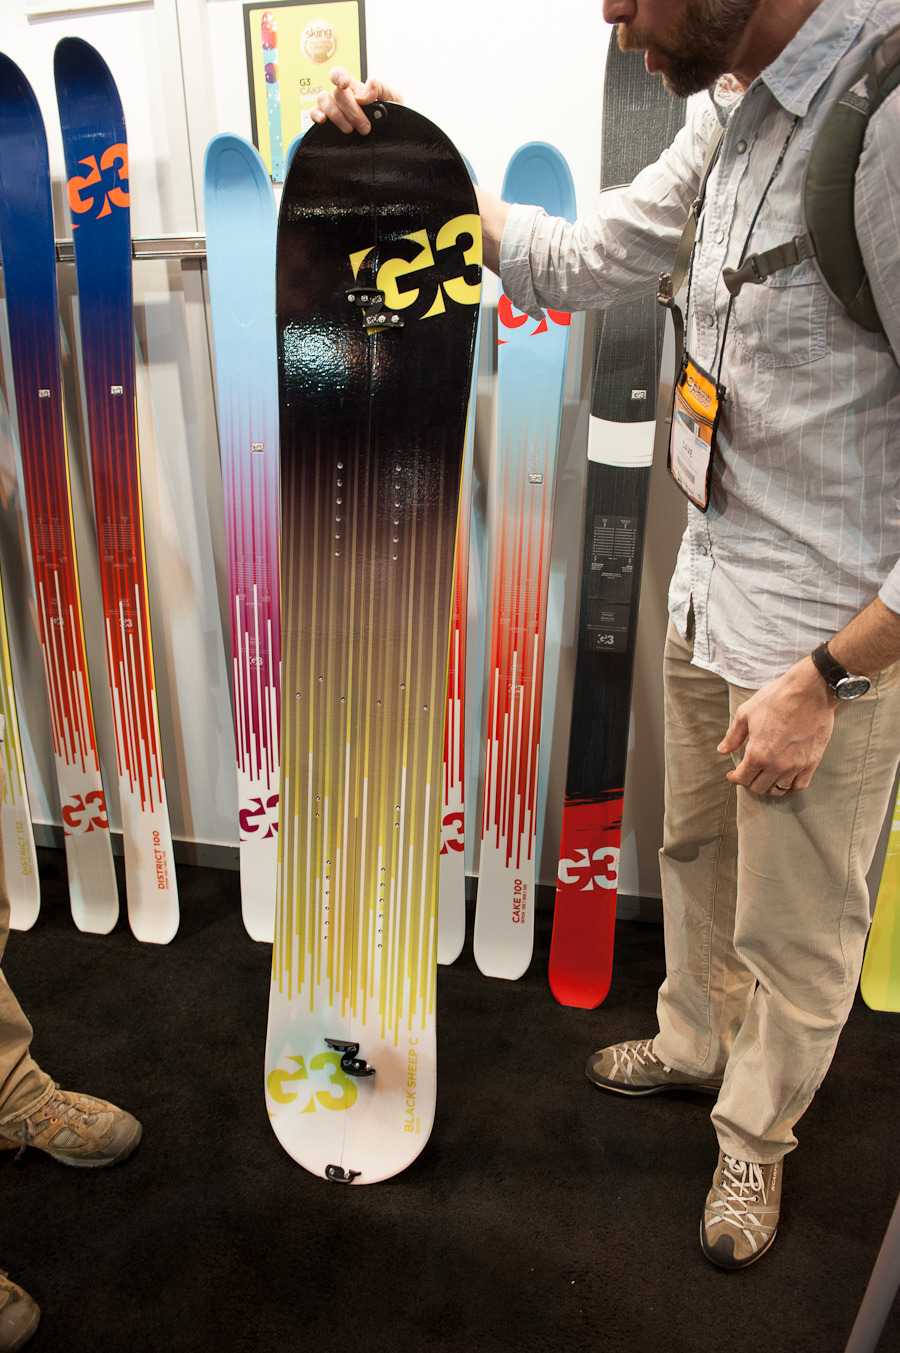 The G3 Splitboard is for those snowboarders looking to travel into the backcountry.